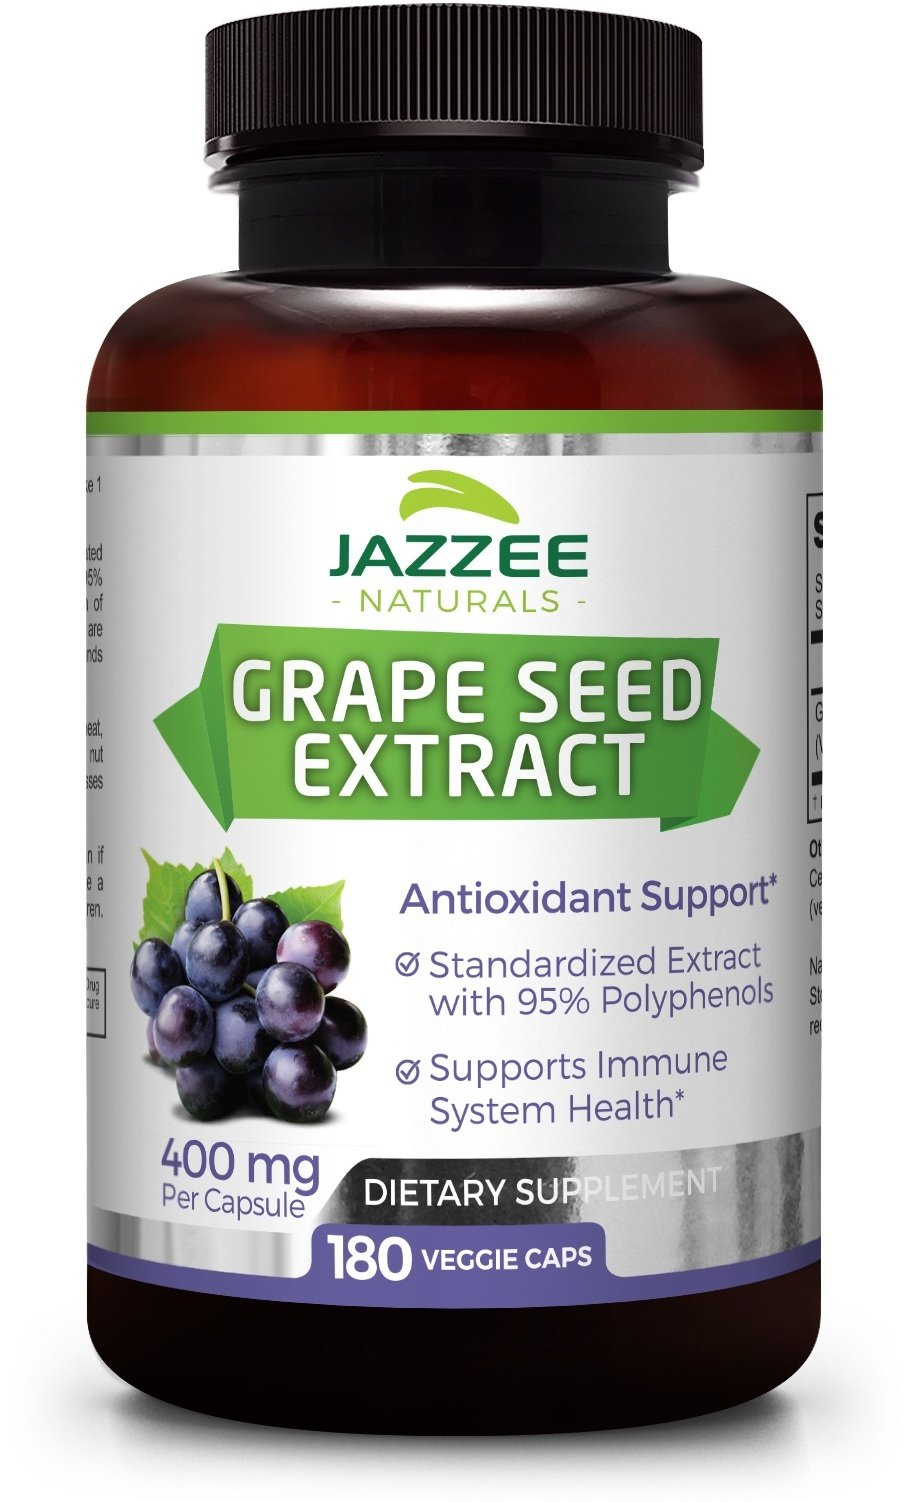 Grape Seed Extract | Maximum Strength | 400 mg | 180 Veggie Caps | 6 Month Supply | 95% Proanthocyanidins | All Natural | Vegetarian / Vegan